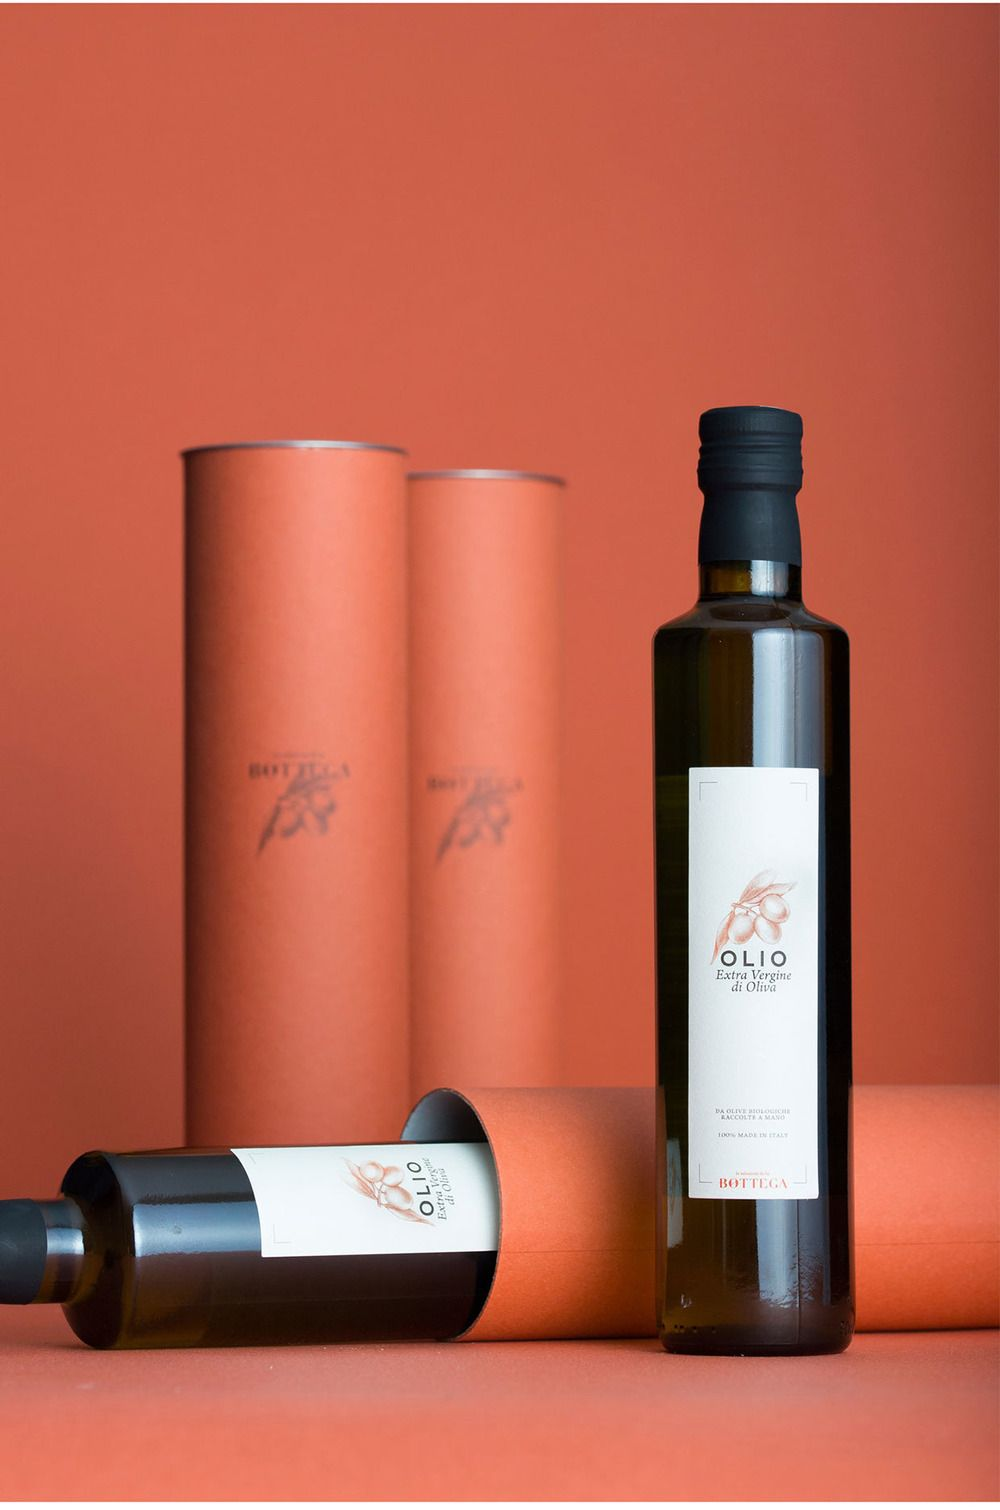 La Bottega Beer and Olive Oil #oliveoils